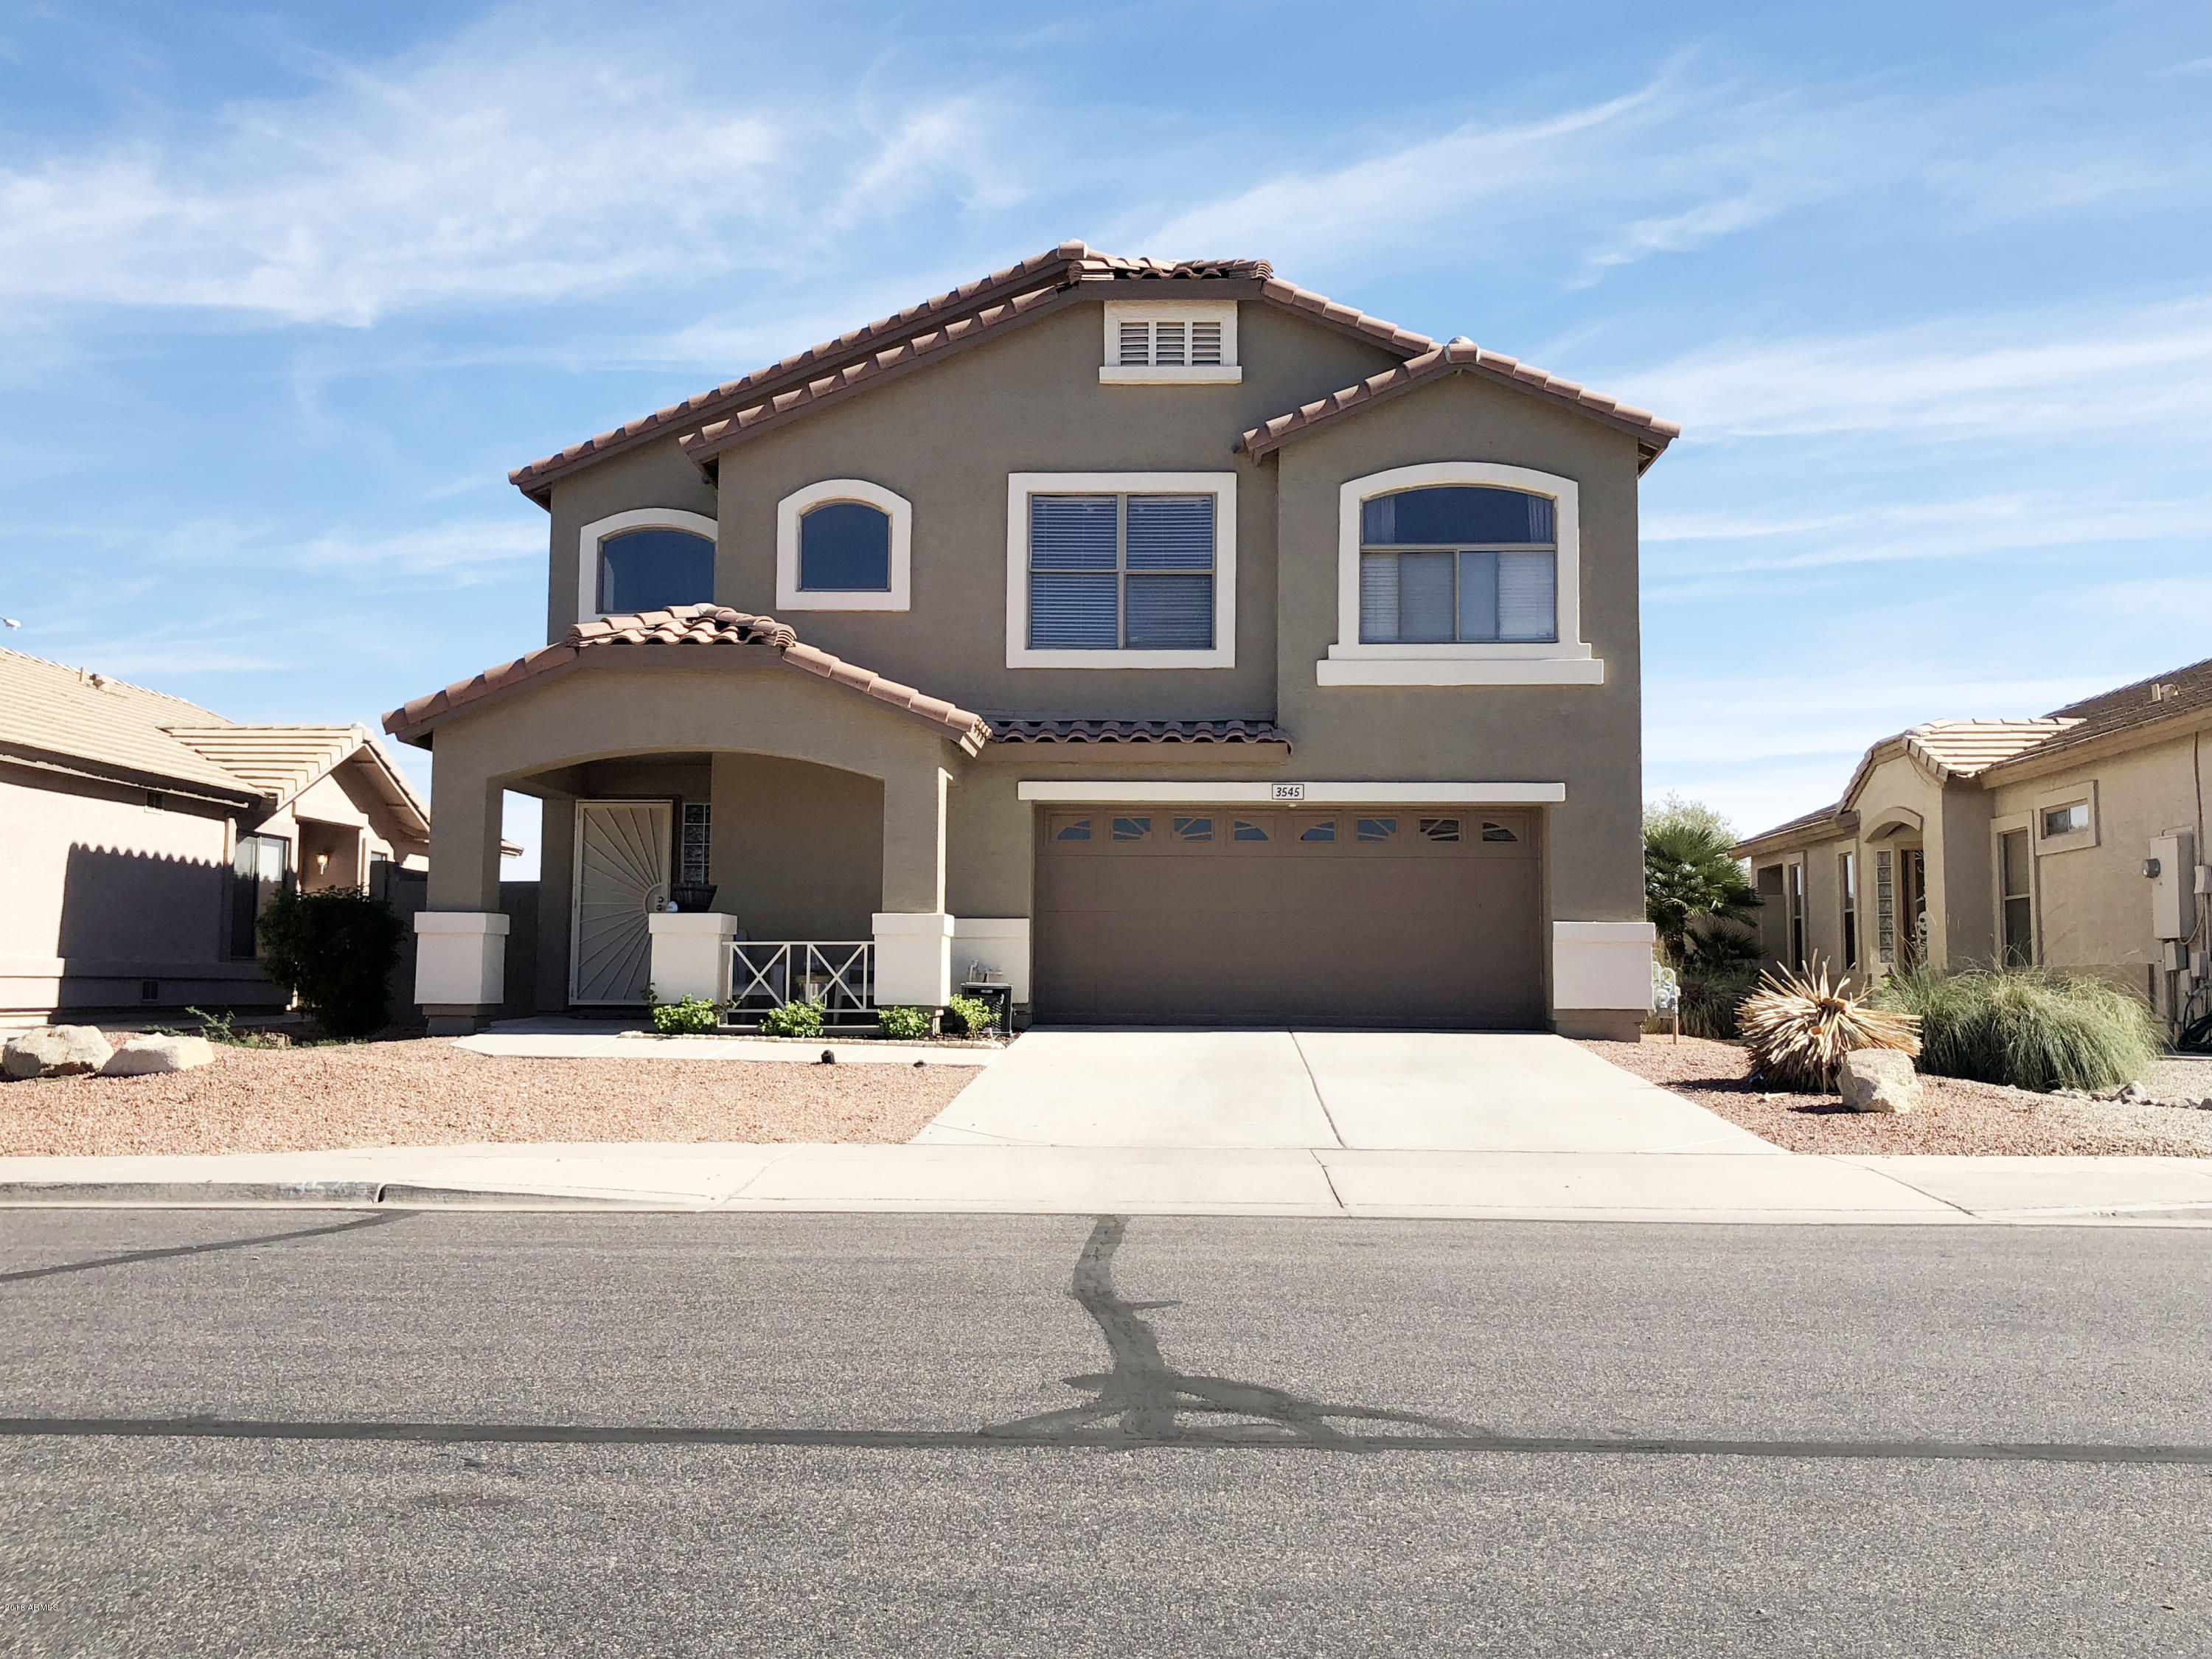 Photo of 3545 S Adelle --, Mesa, AZ 85212